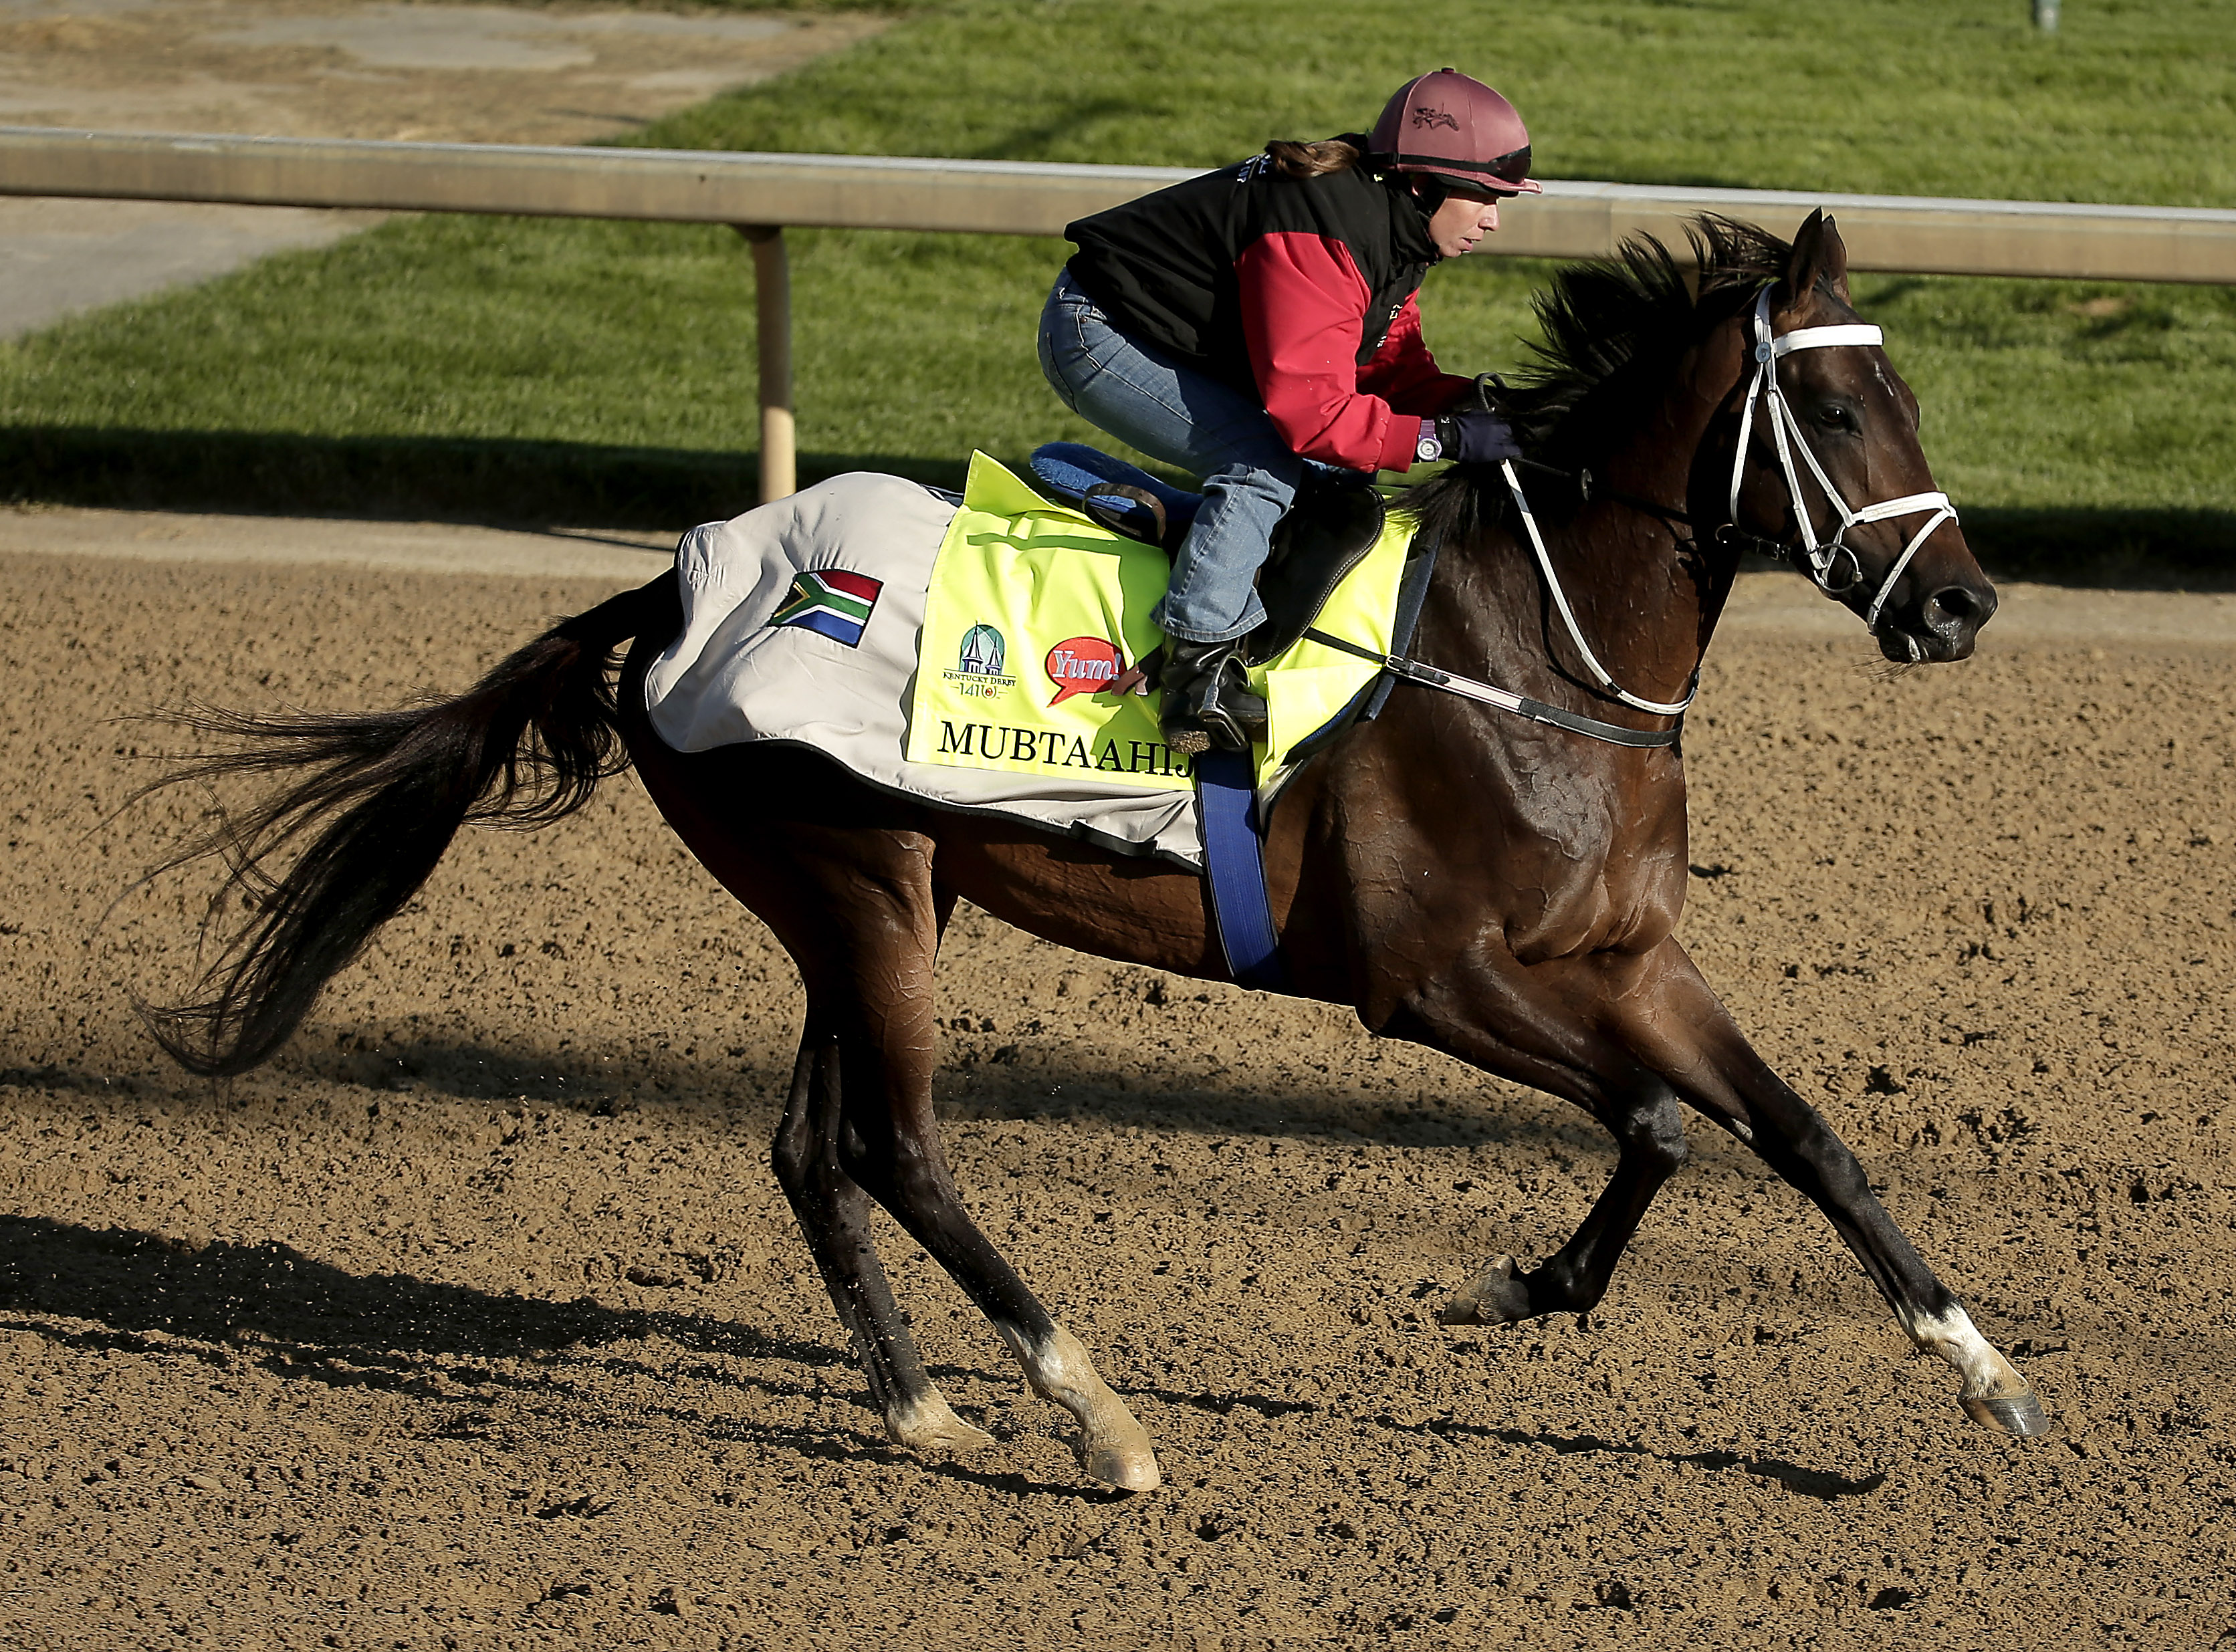 Kentucky Derby hopeful Mubtaahij is ridden by exercise rider Lisa Moncrieff during a morning workout at Churchill Downs Tuesday, April 28, 2015, in Louisville, Ky. (AP Photo/Charlie Riedel)